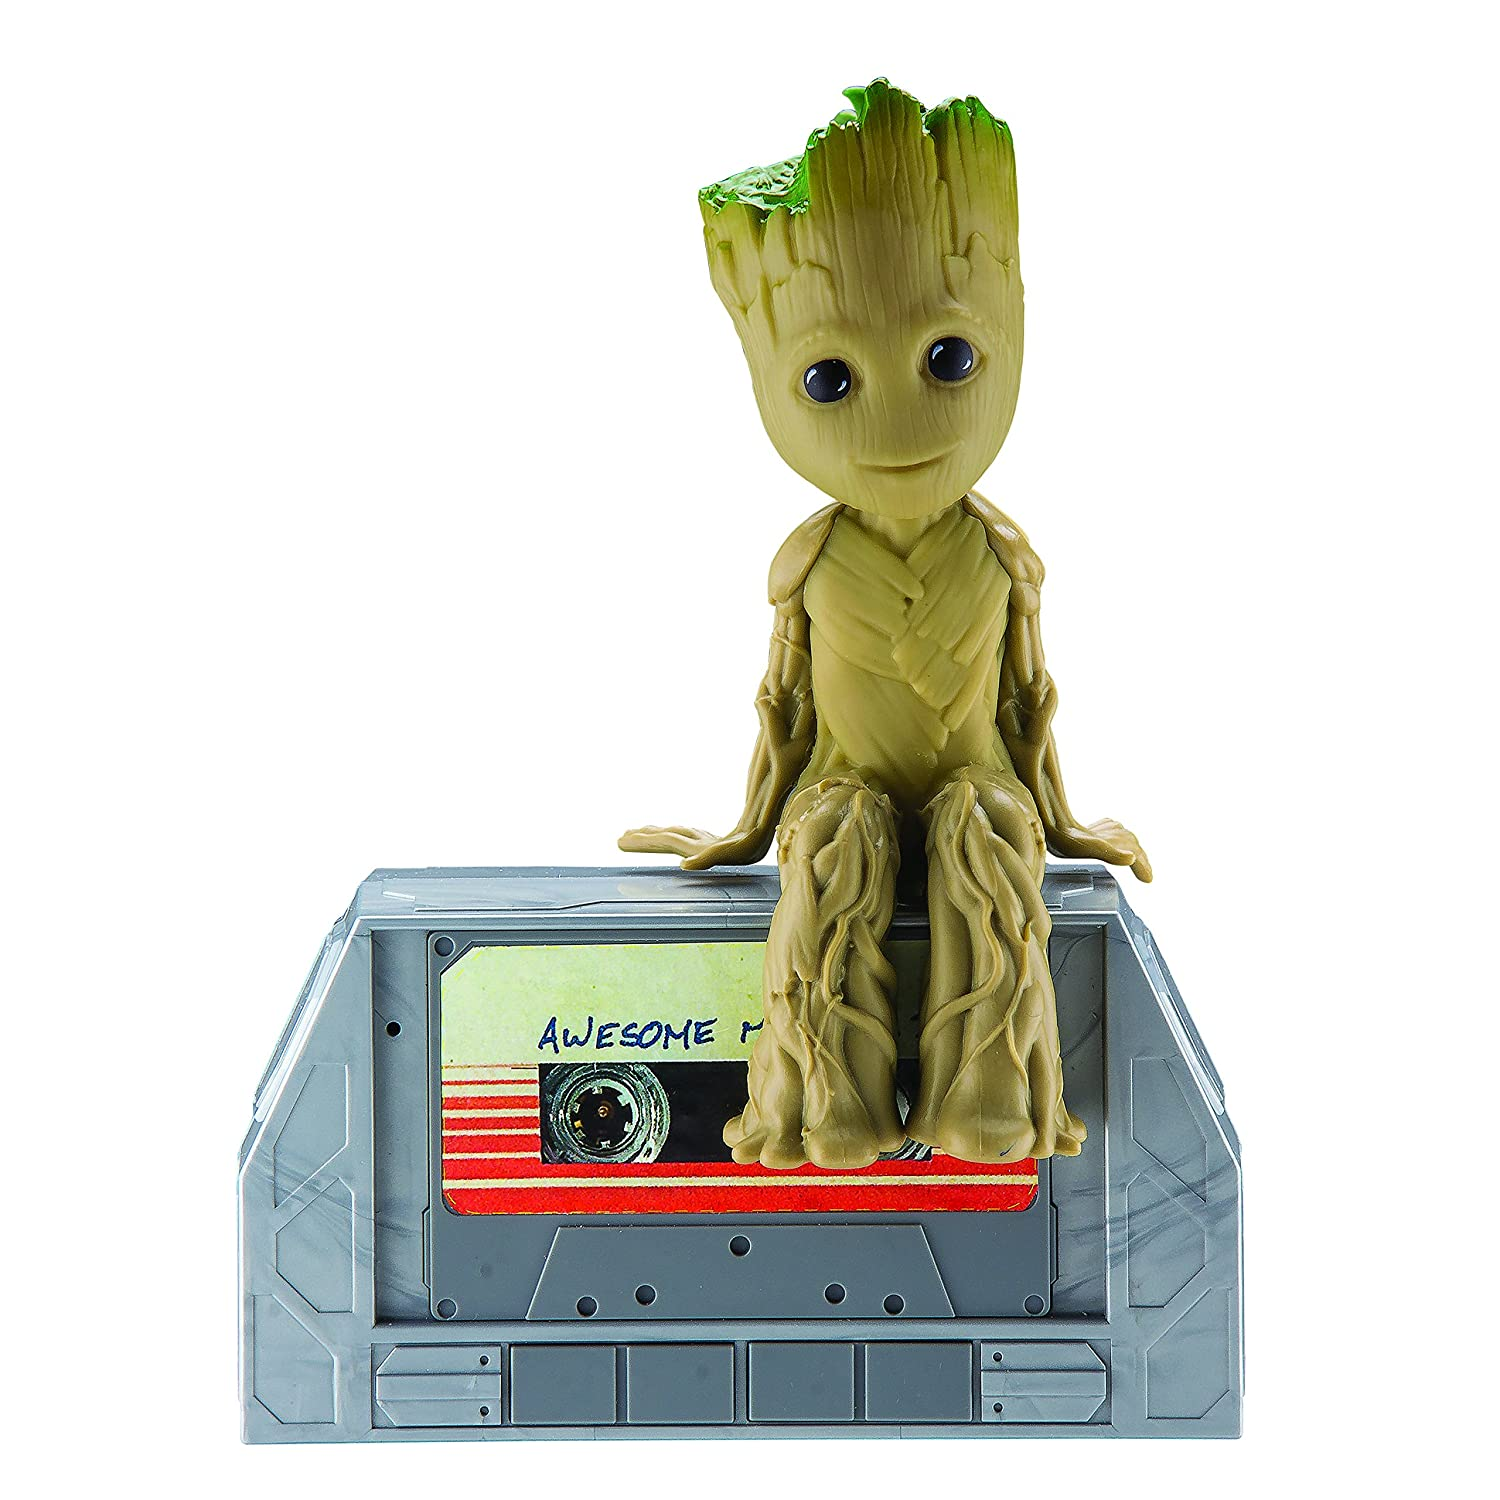 Guardians of the Galaxy Vol 2 Marvel Movie Dancing Groot Speaker Boombox Moves and Grooves to The Music KIDdesigns Inc GG-410.EMV7